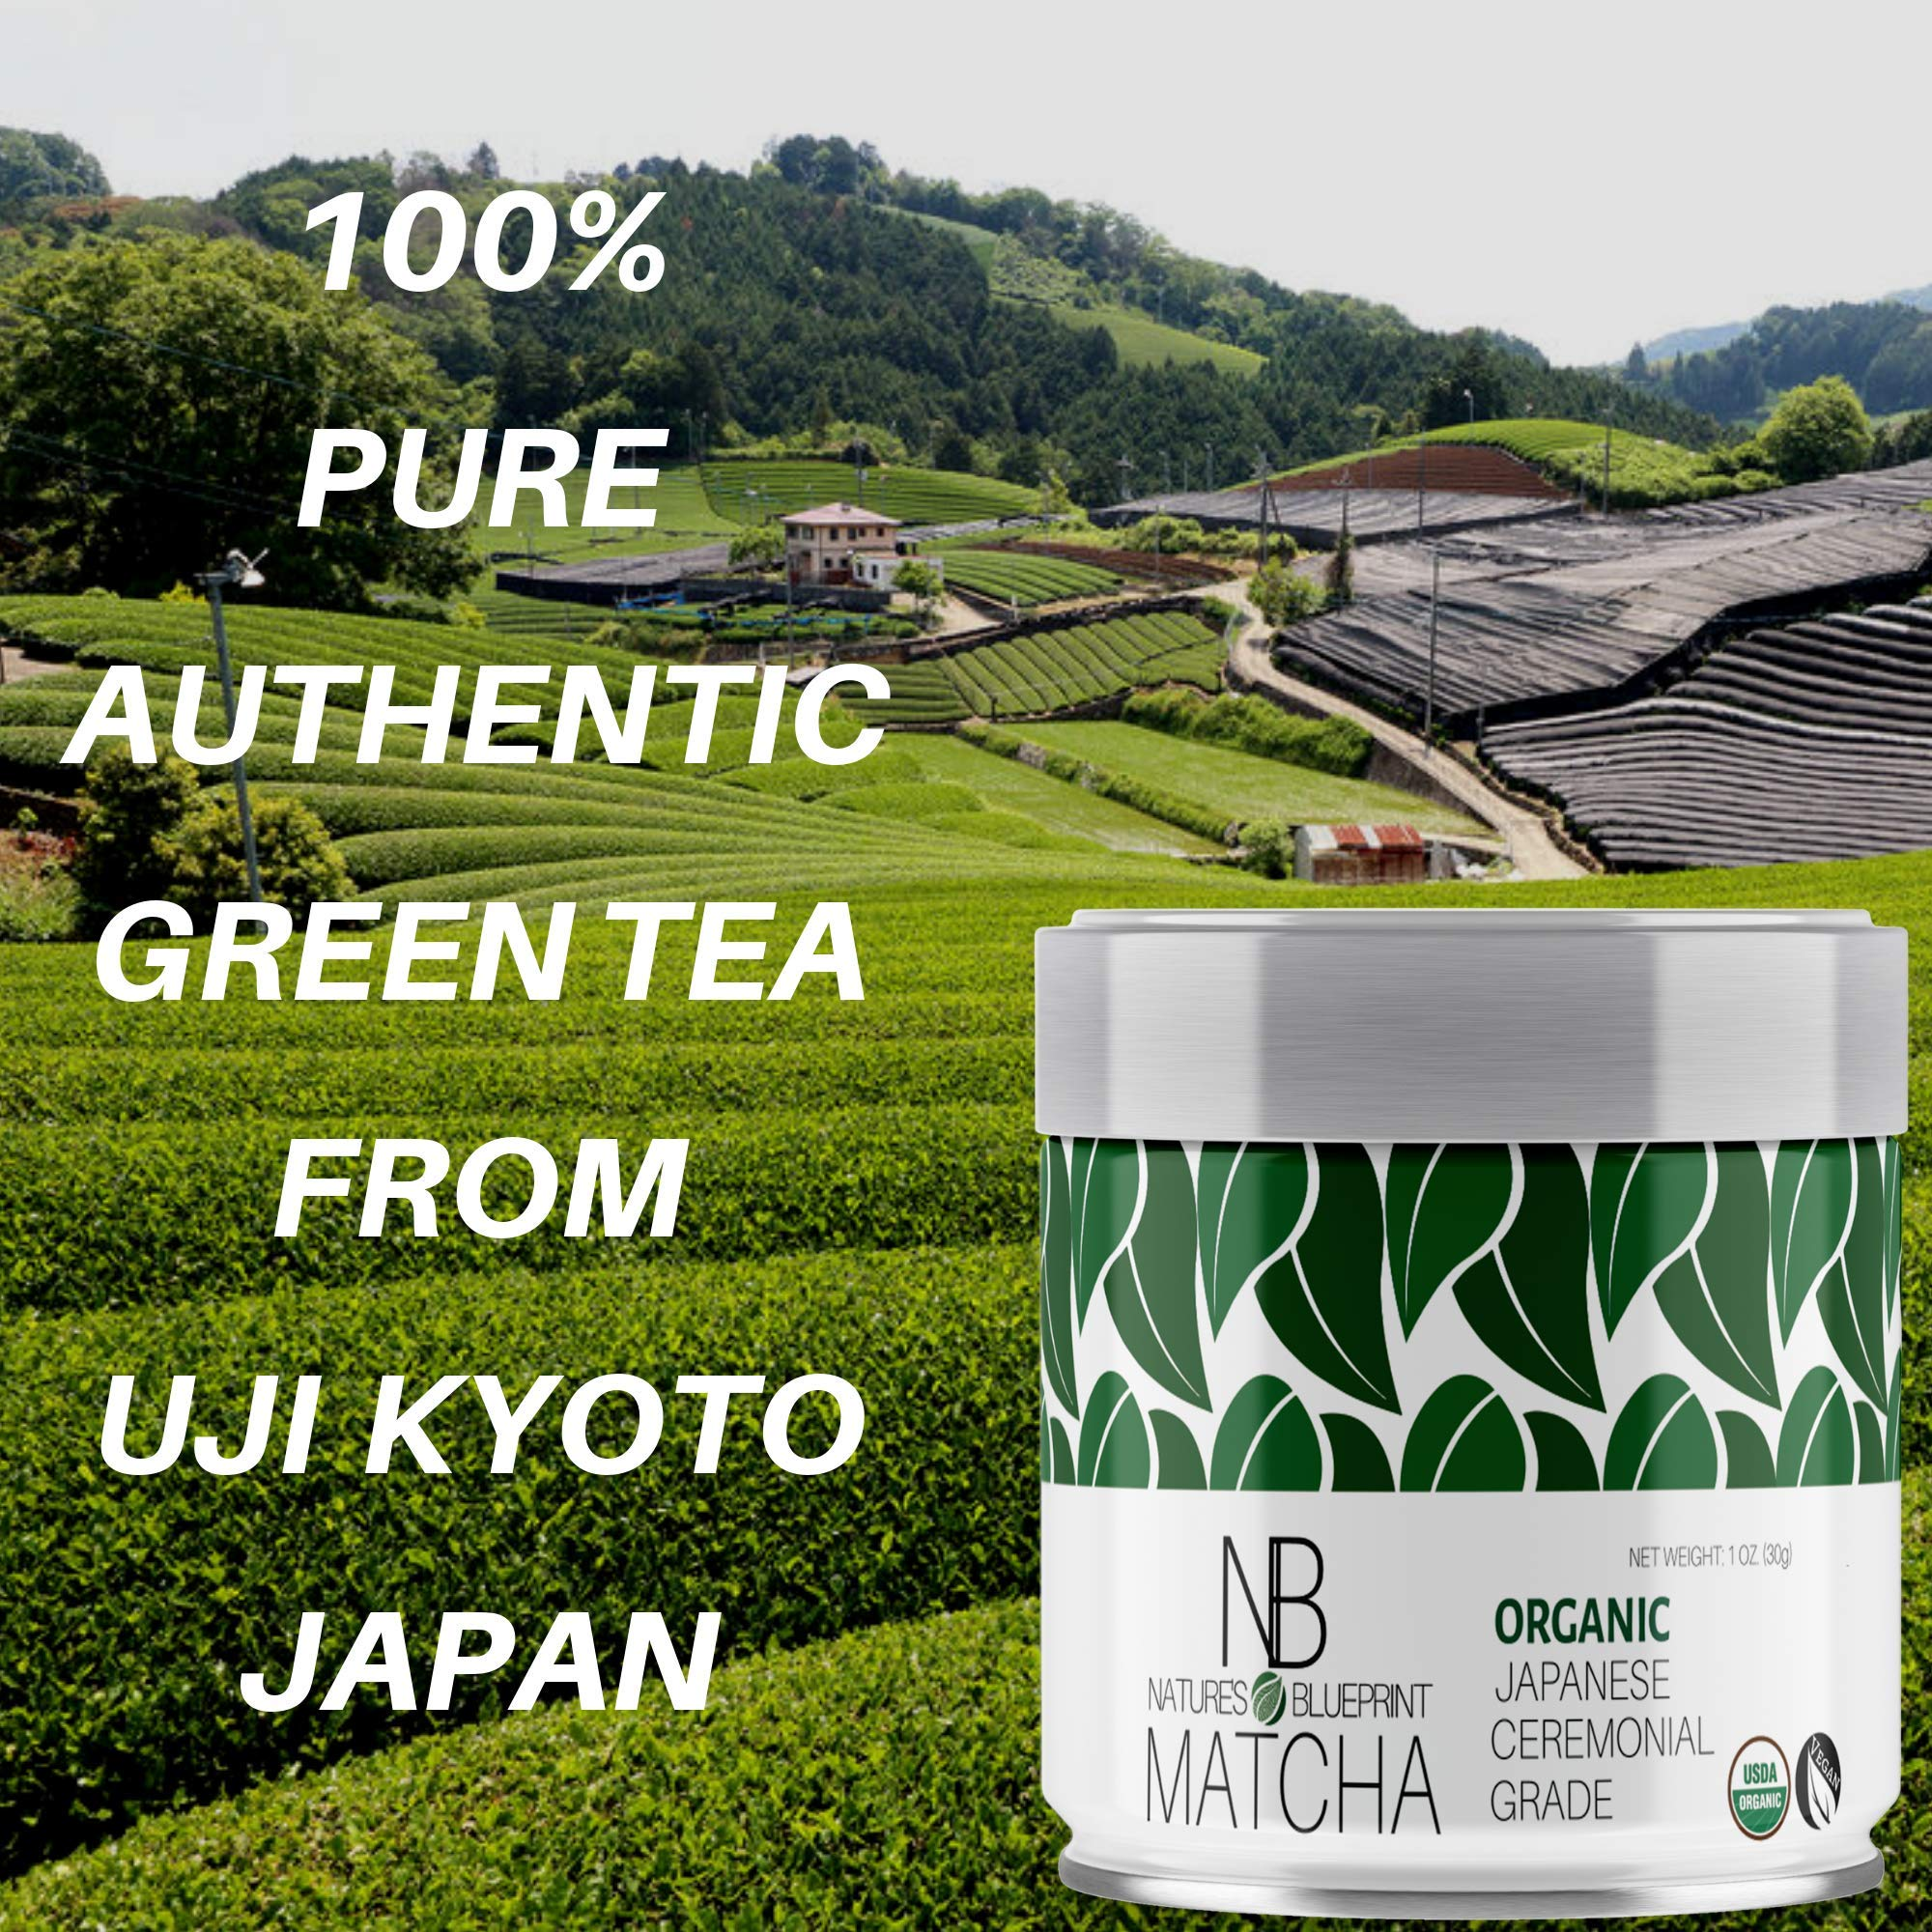 Matcha Green Tea Powder-3 Pk-Organic Japanese Ceremonial Grade Straight from Uji Kyoto, Premium Quality-3 oz BUNDLE contains Powerful Antioxidant Energy for NON-GMO Health. … by Nature's Blueprint (Image #7)